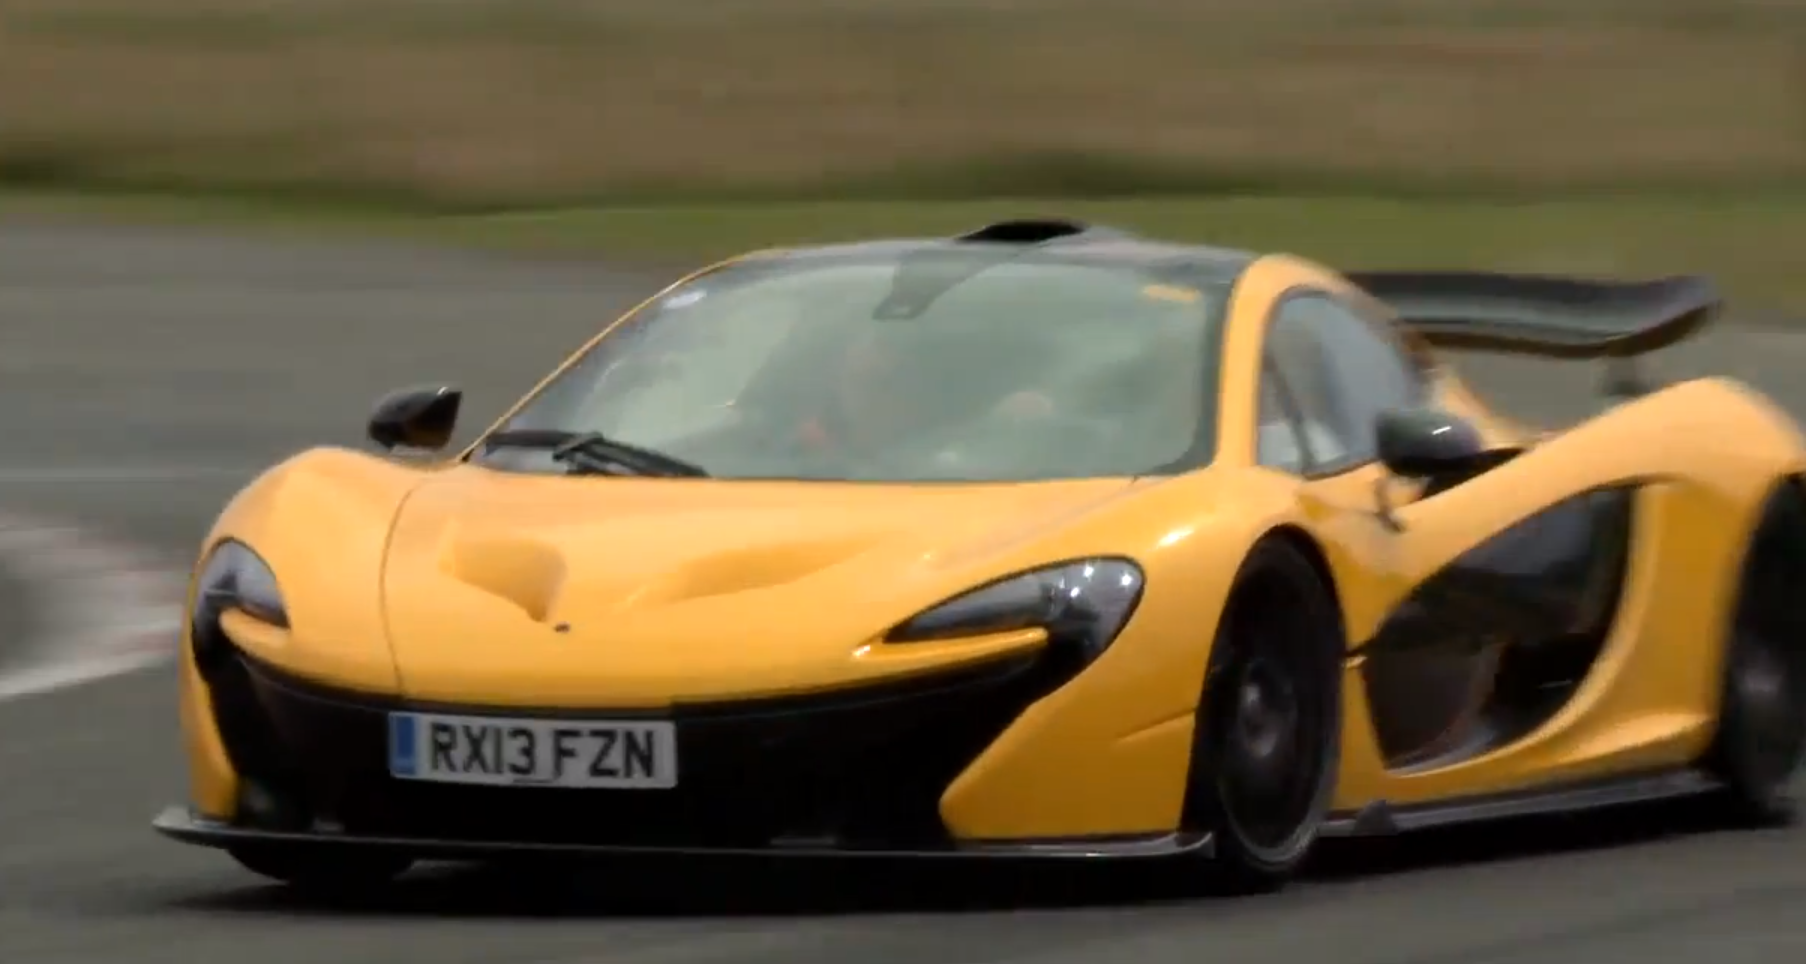 jay leno drives mclaren p1 on top gear track says he ordered one autoevolution. Black Bedroom Furniture Sets. Home Design Ideas